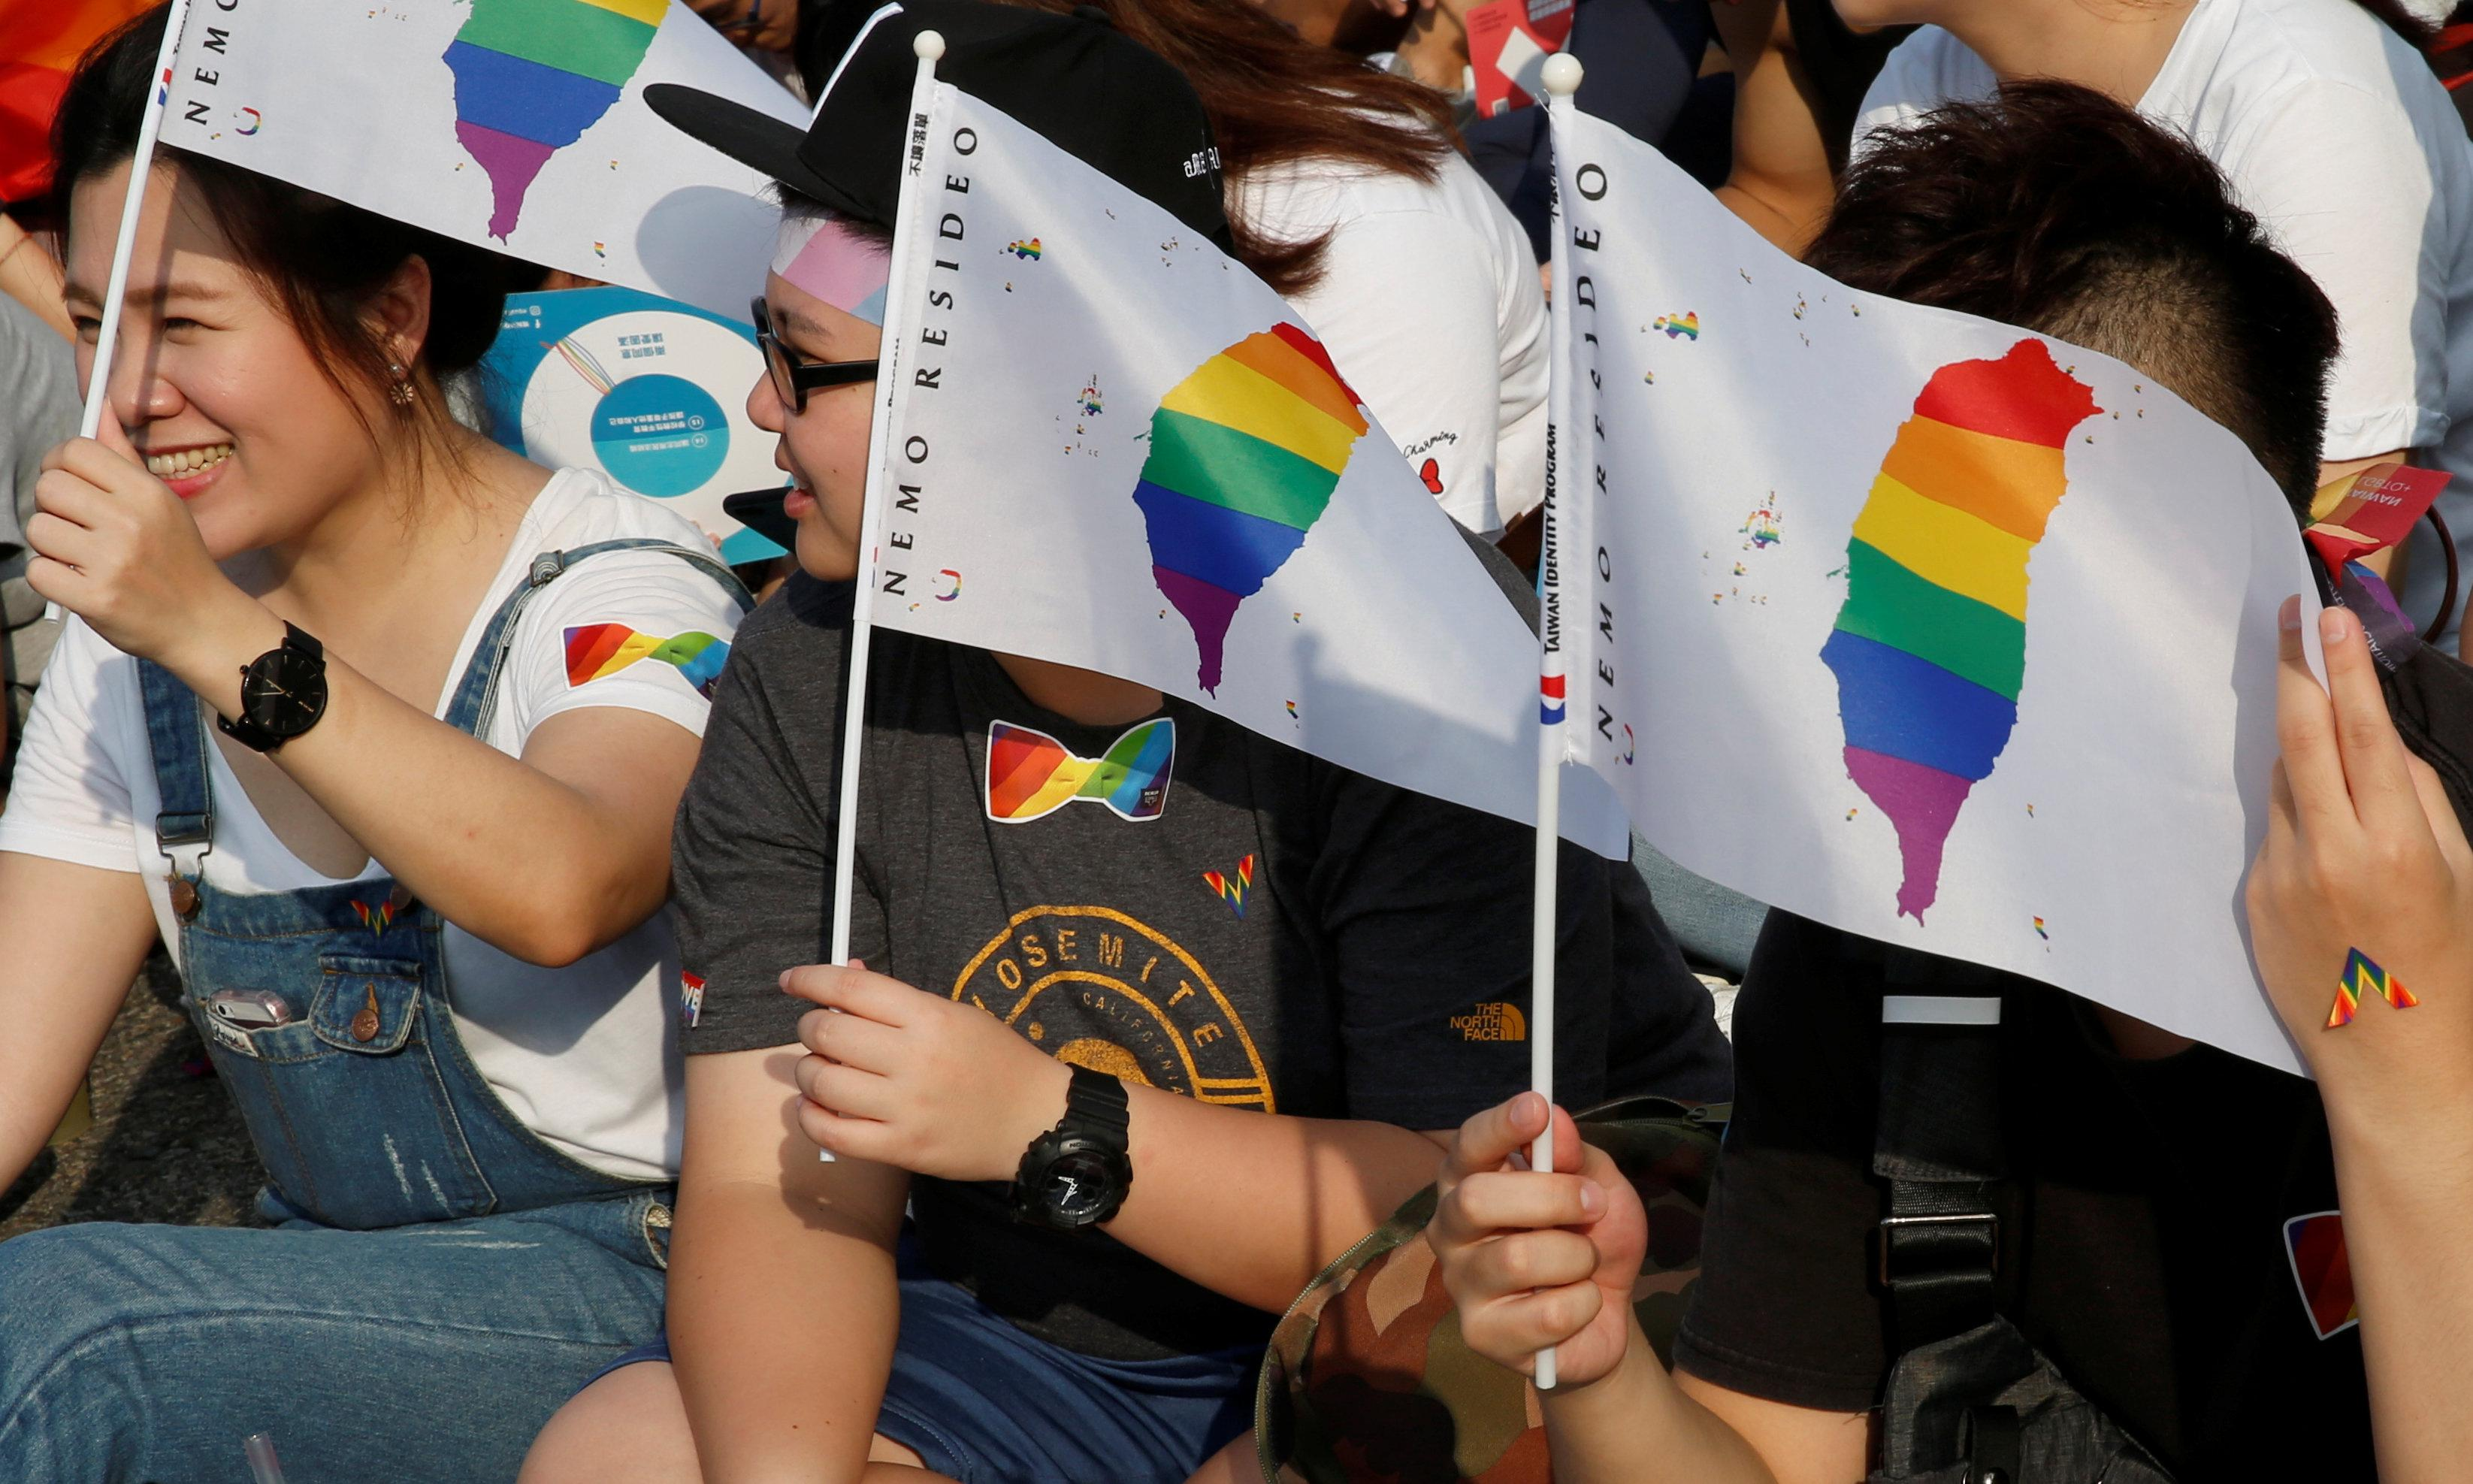 Taiwan proposes Asia's first draft law on marriage equality